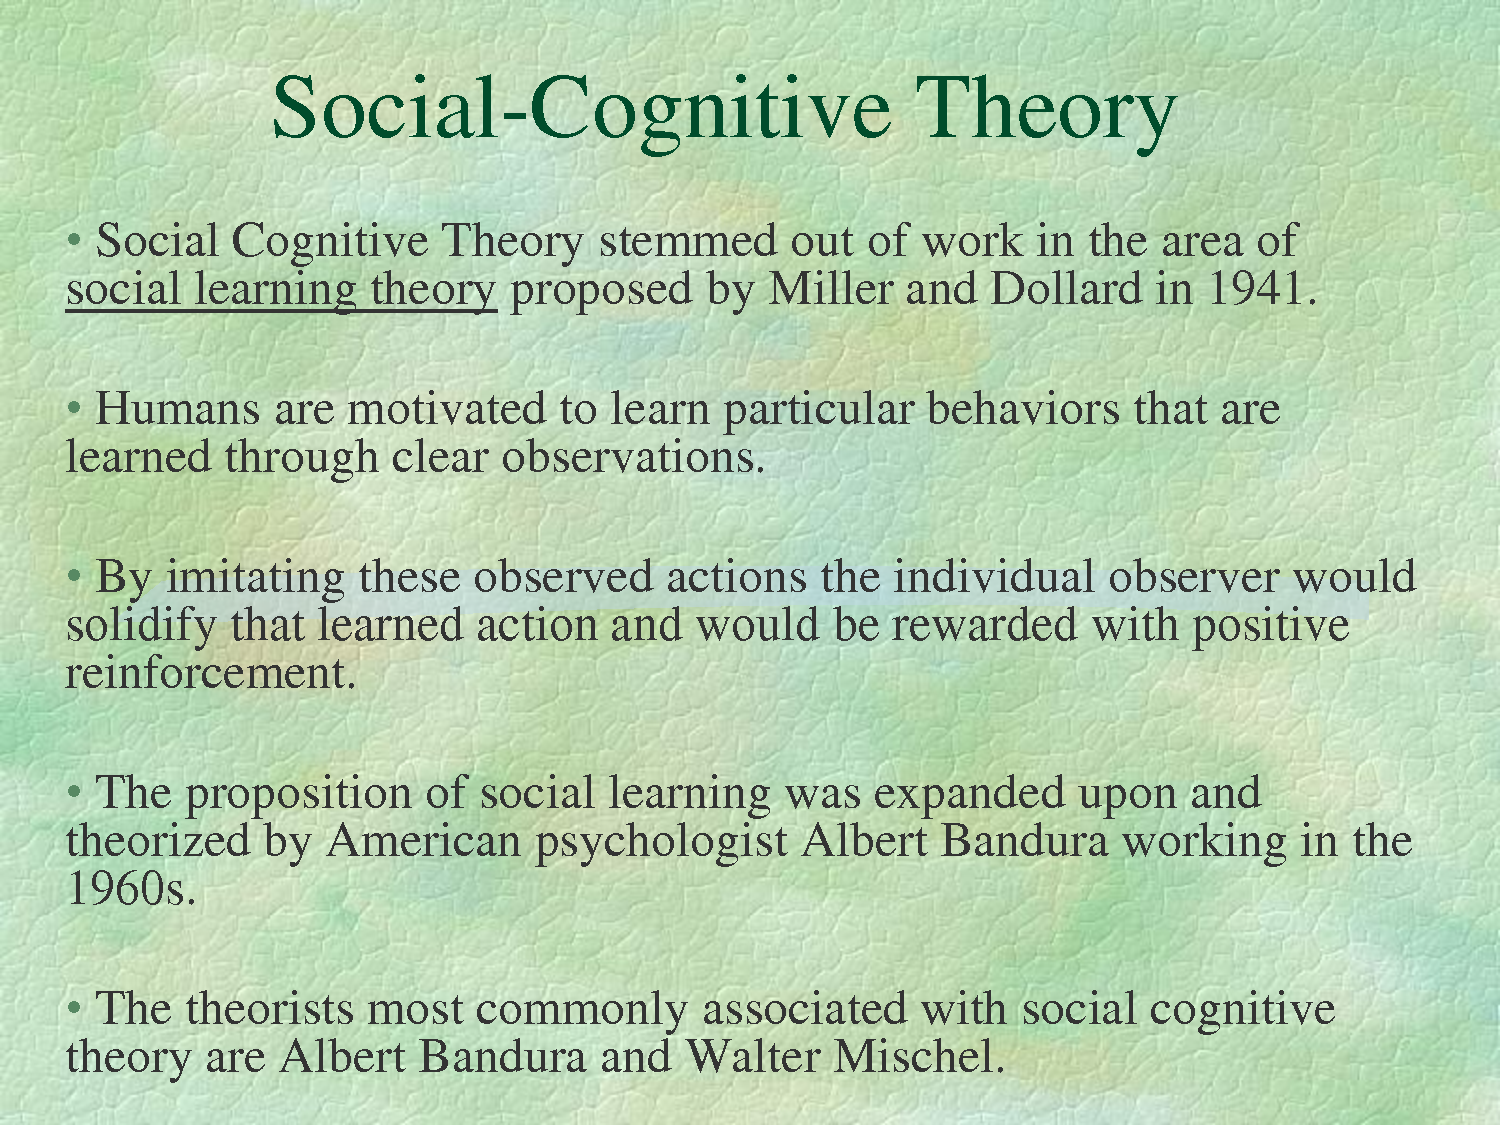 a description of a social learning theory of albert bandura Social learning theory within the classroom : albert bandura's theory encourages educators to model appropriate -albert bandura, social learning theory.